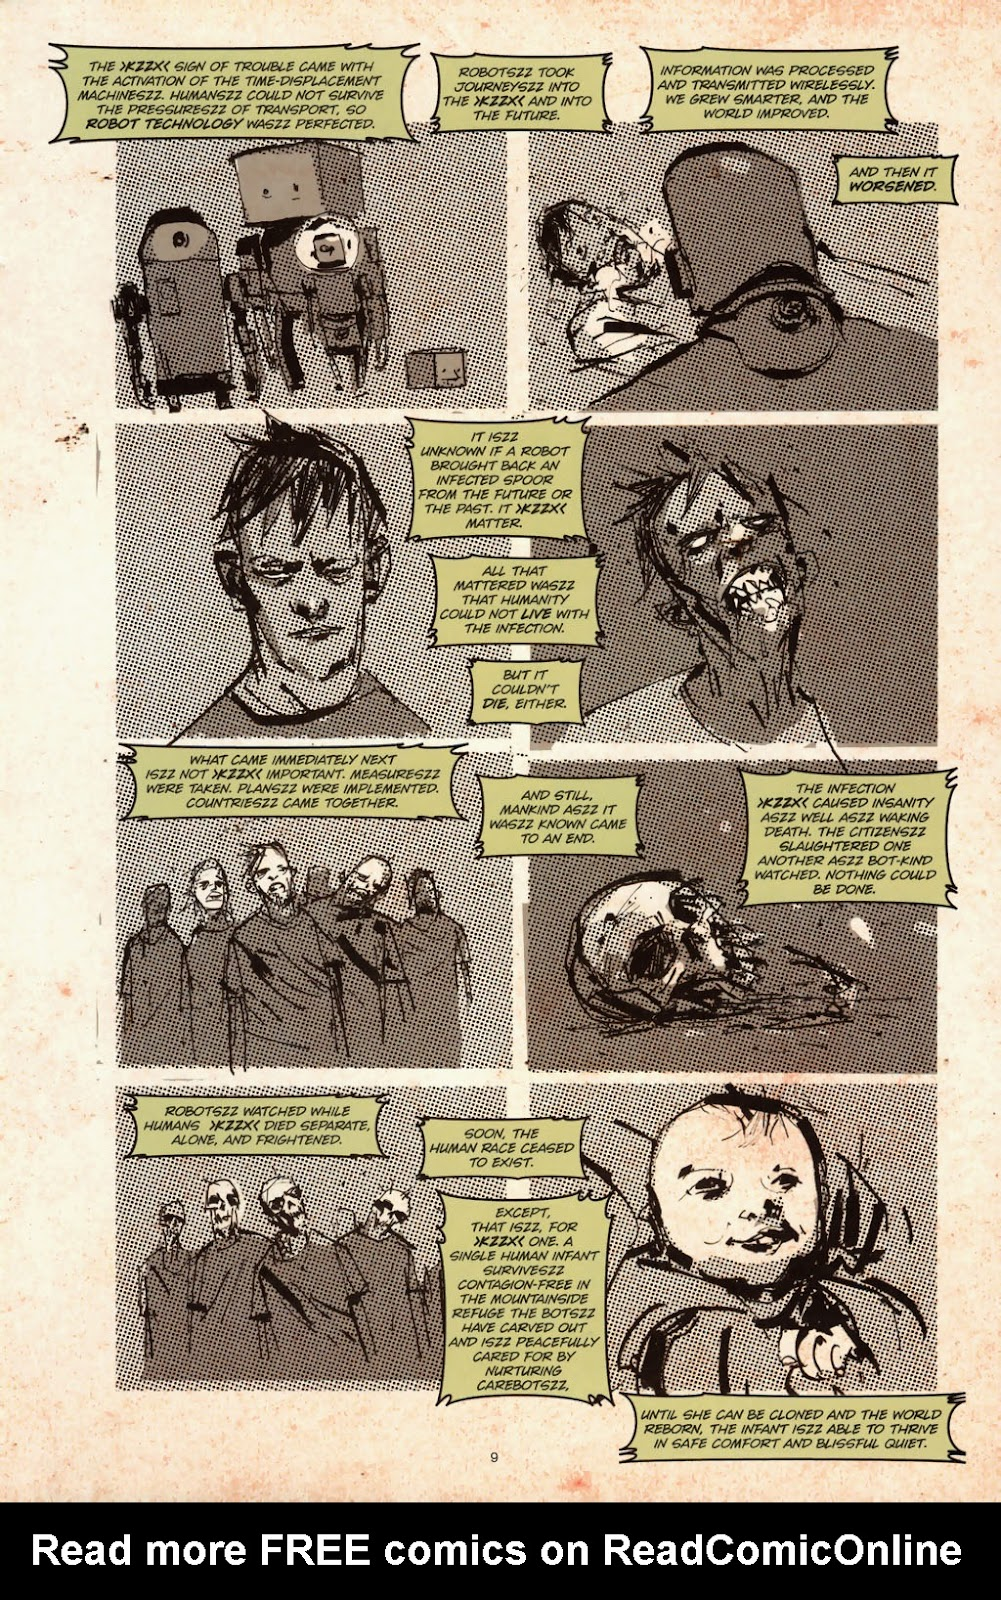 Zombies vs. Robots (2006) Issue #1 Page 11